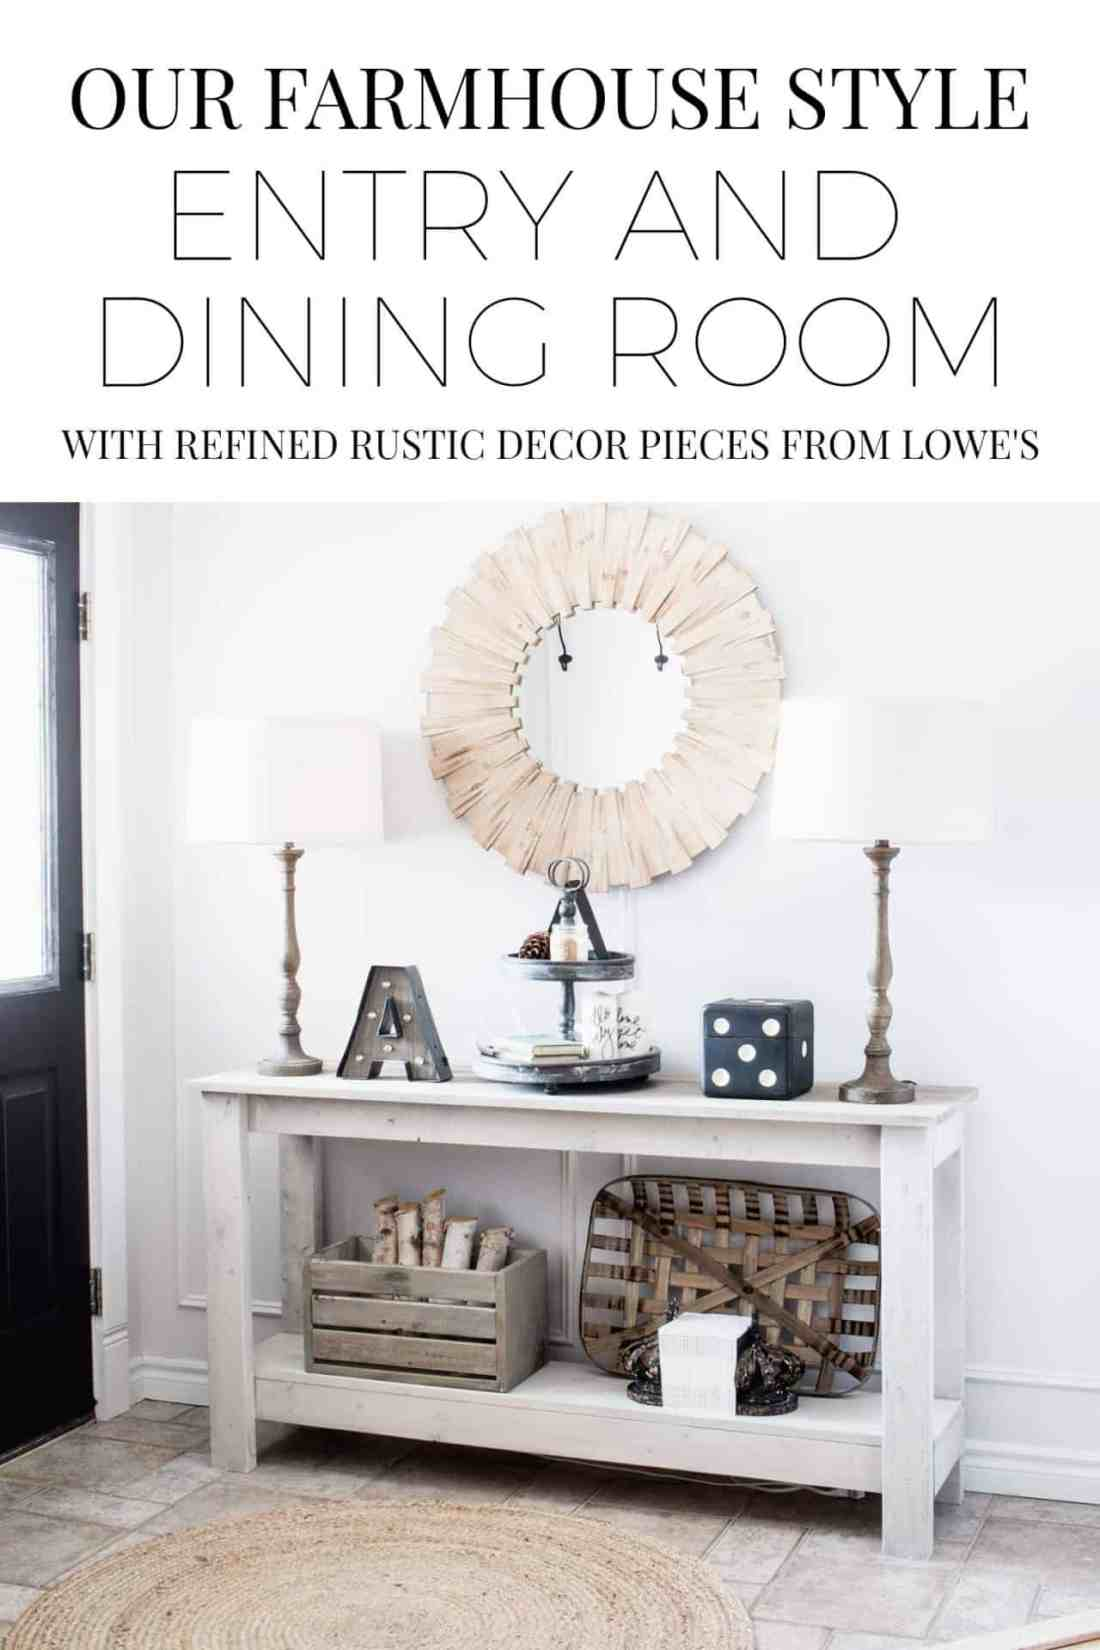 Our Farmhouse Style Entry And Dining Room With Refined Rustic Decor Pieces From Lowes